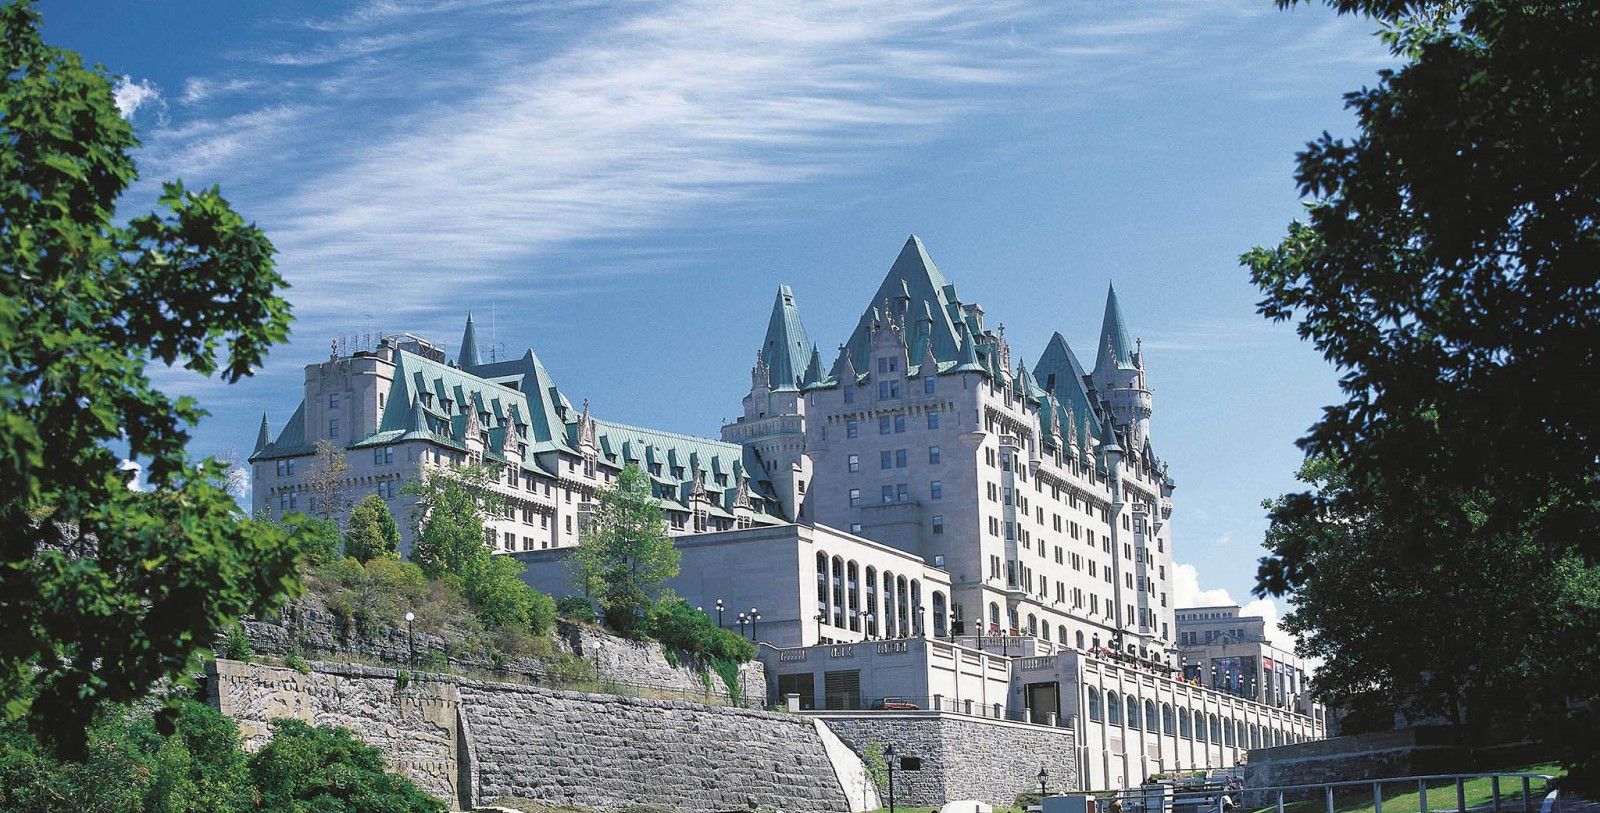 Image of hotel exterior Fairmont Château Laurier, 1912, Member of Historic Hotels Worldwide, in Ottowa, Canada, Overview